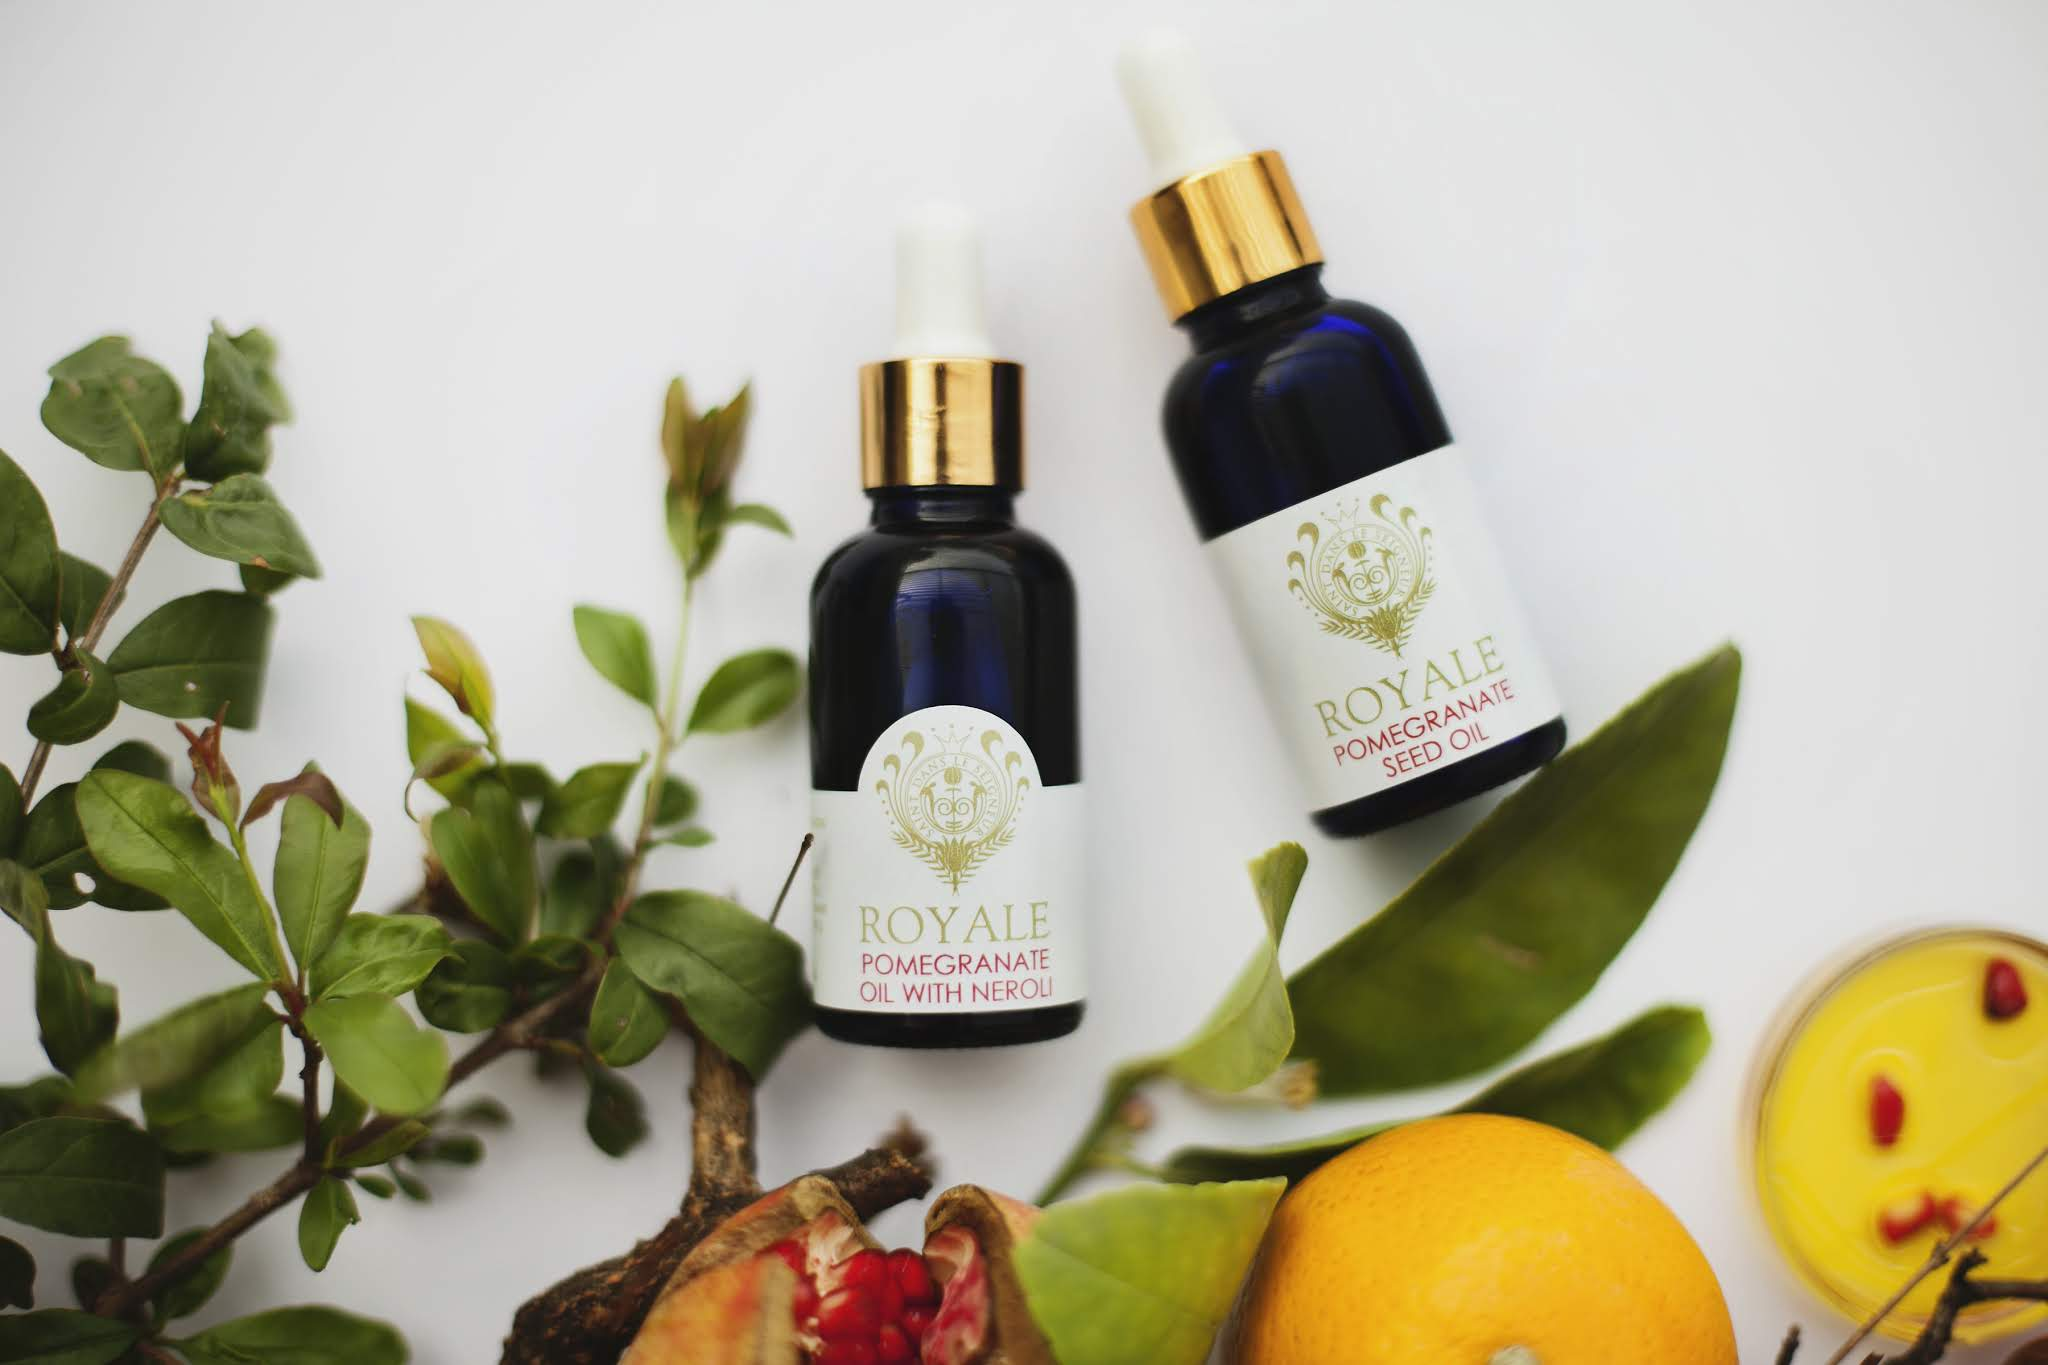 Royale Pomegranate seed oil